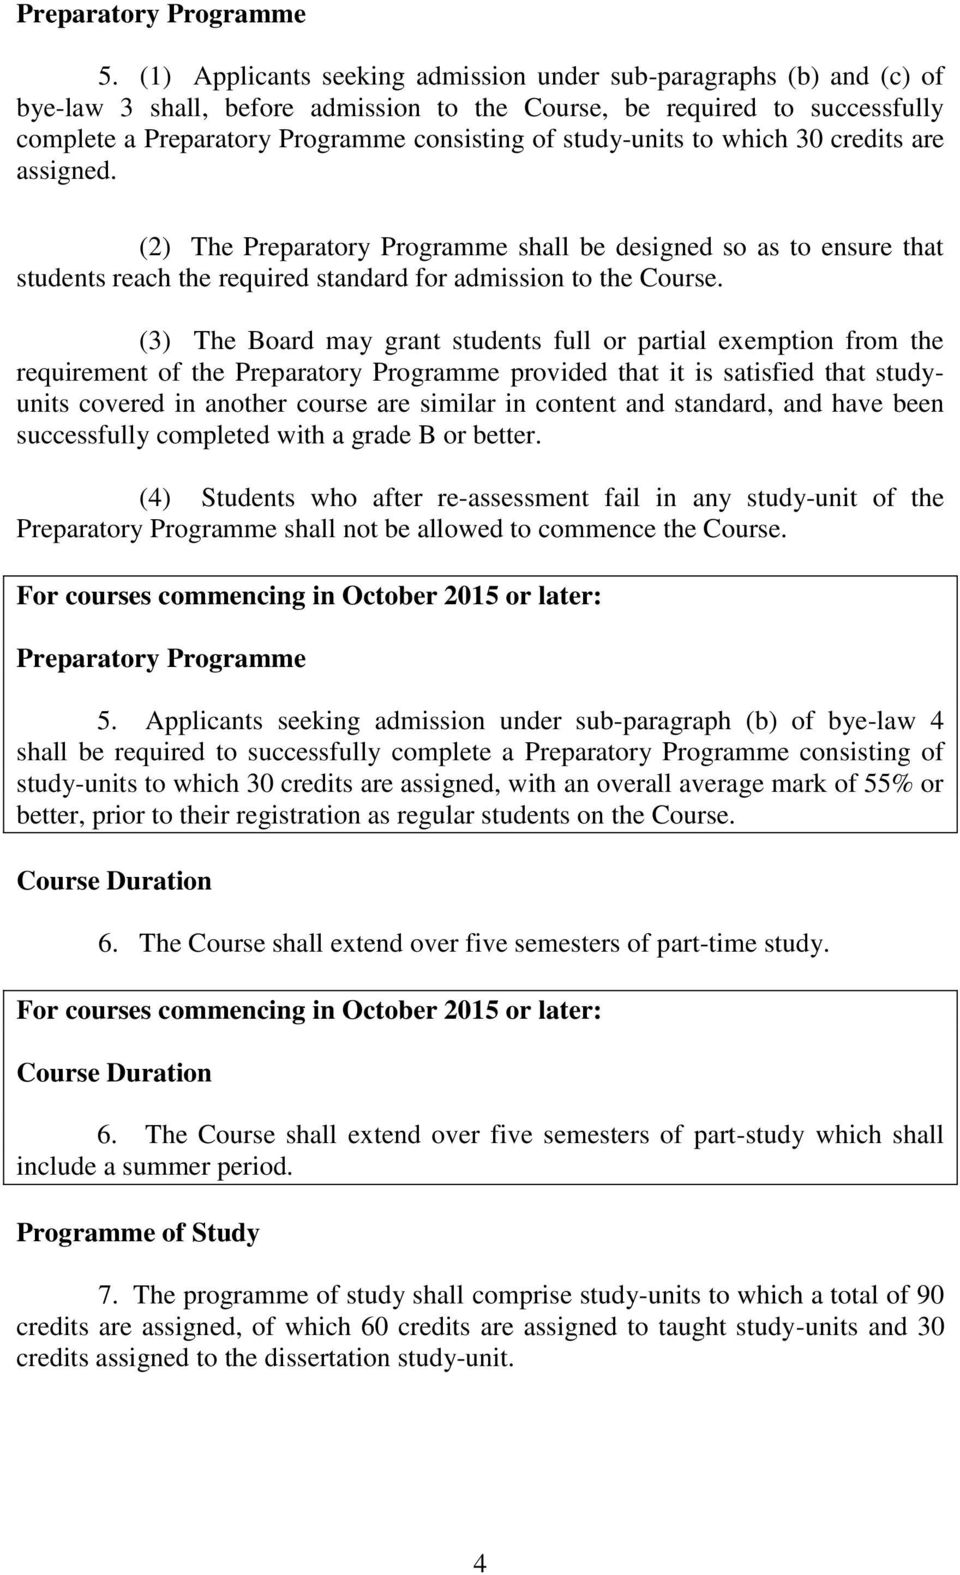 study-units to which 30 credits are assigned. (2) The Preparatory Programme shall be designed so as to ensure that students reach the required standard for admission to the Course.